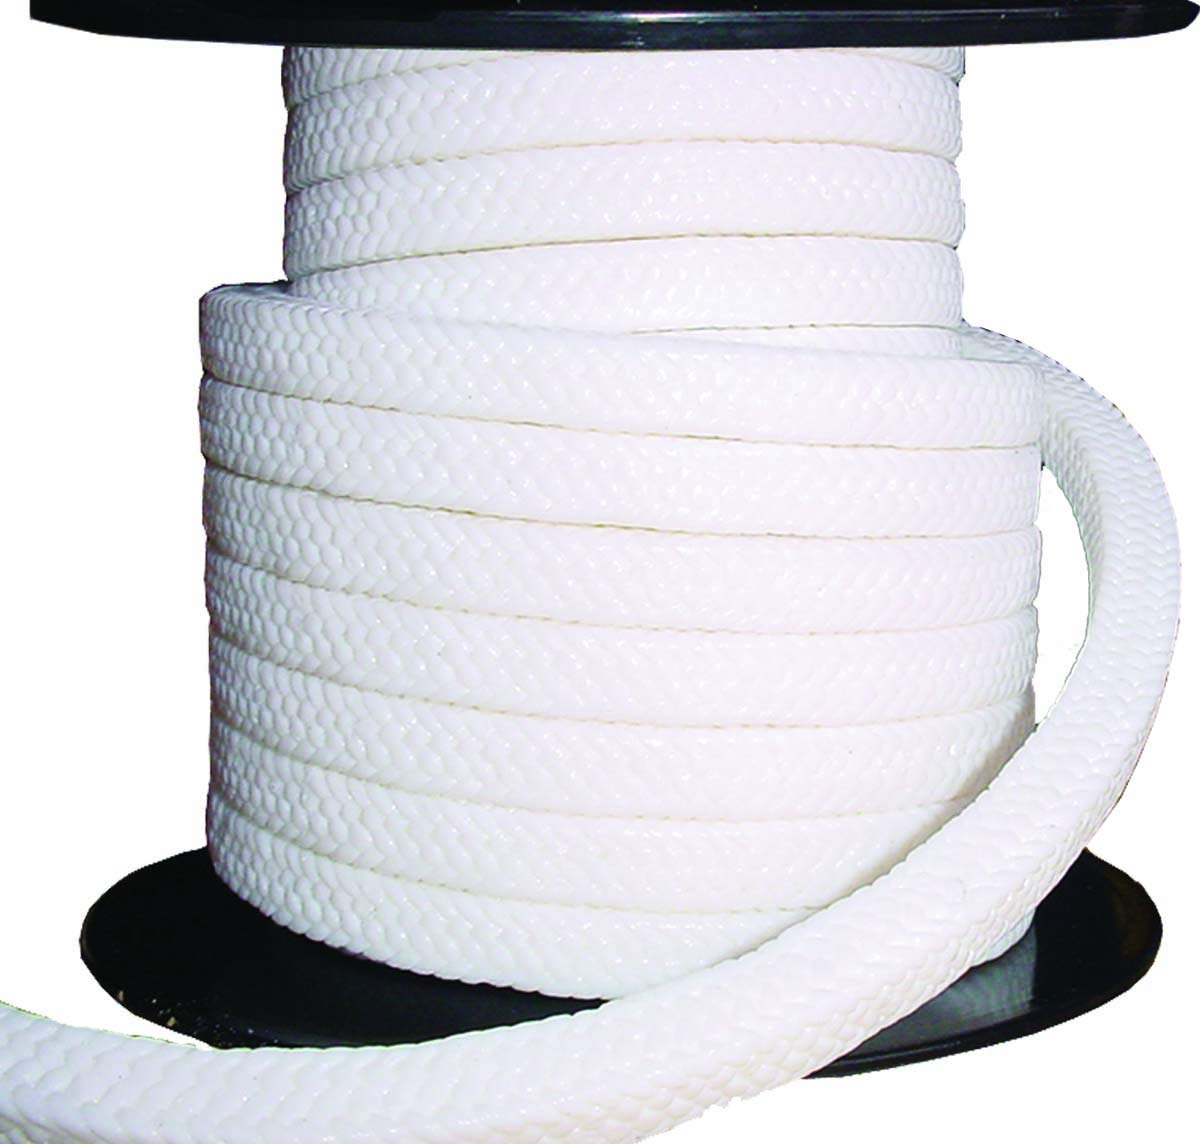 Minseal 1400L - PTFE Braided Compression Packing, Clean White, Oil Lubricated, for Pump Valve or Mechanical Seal, 3/8'' x 3/8'', 8 feet